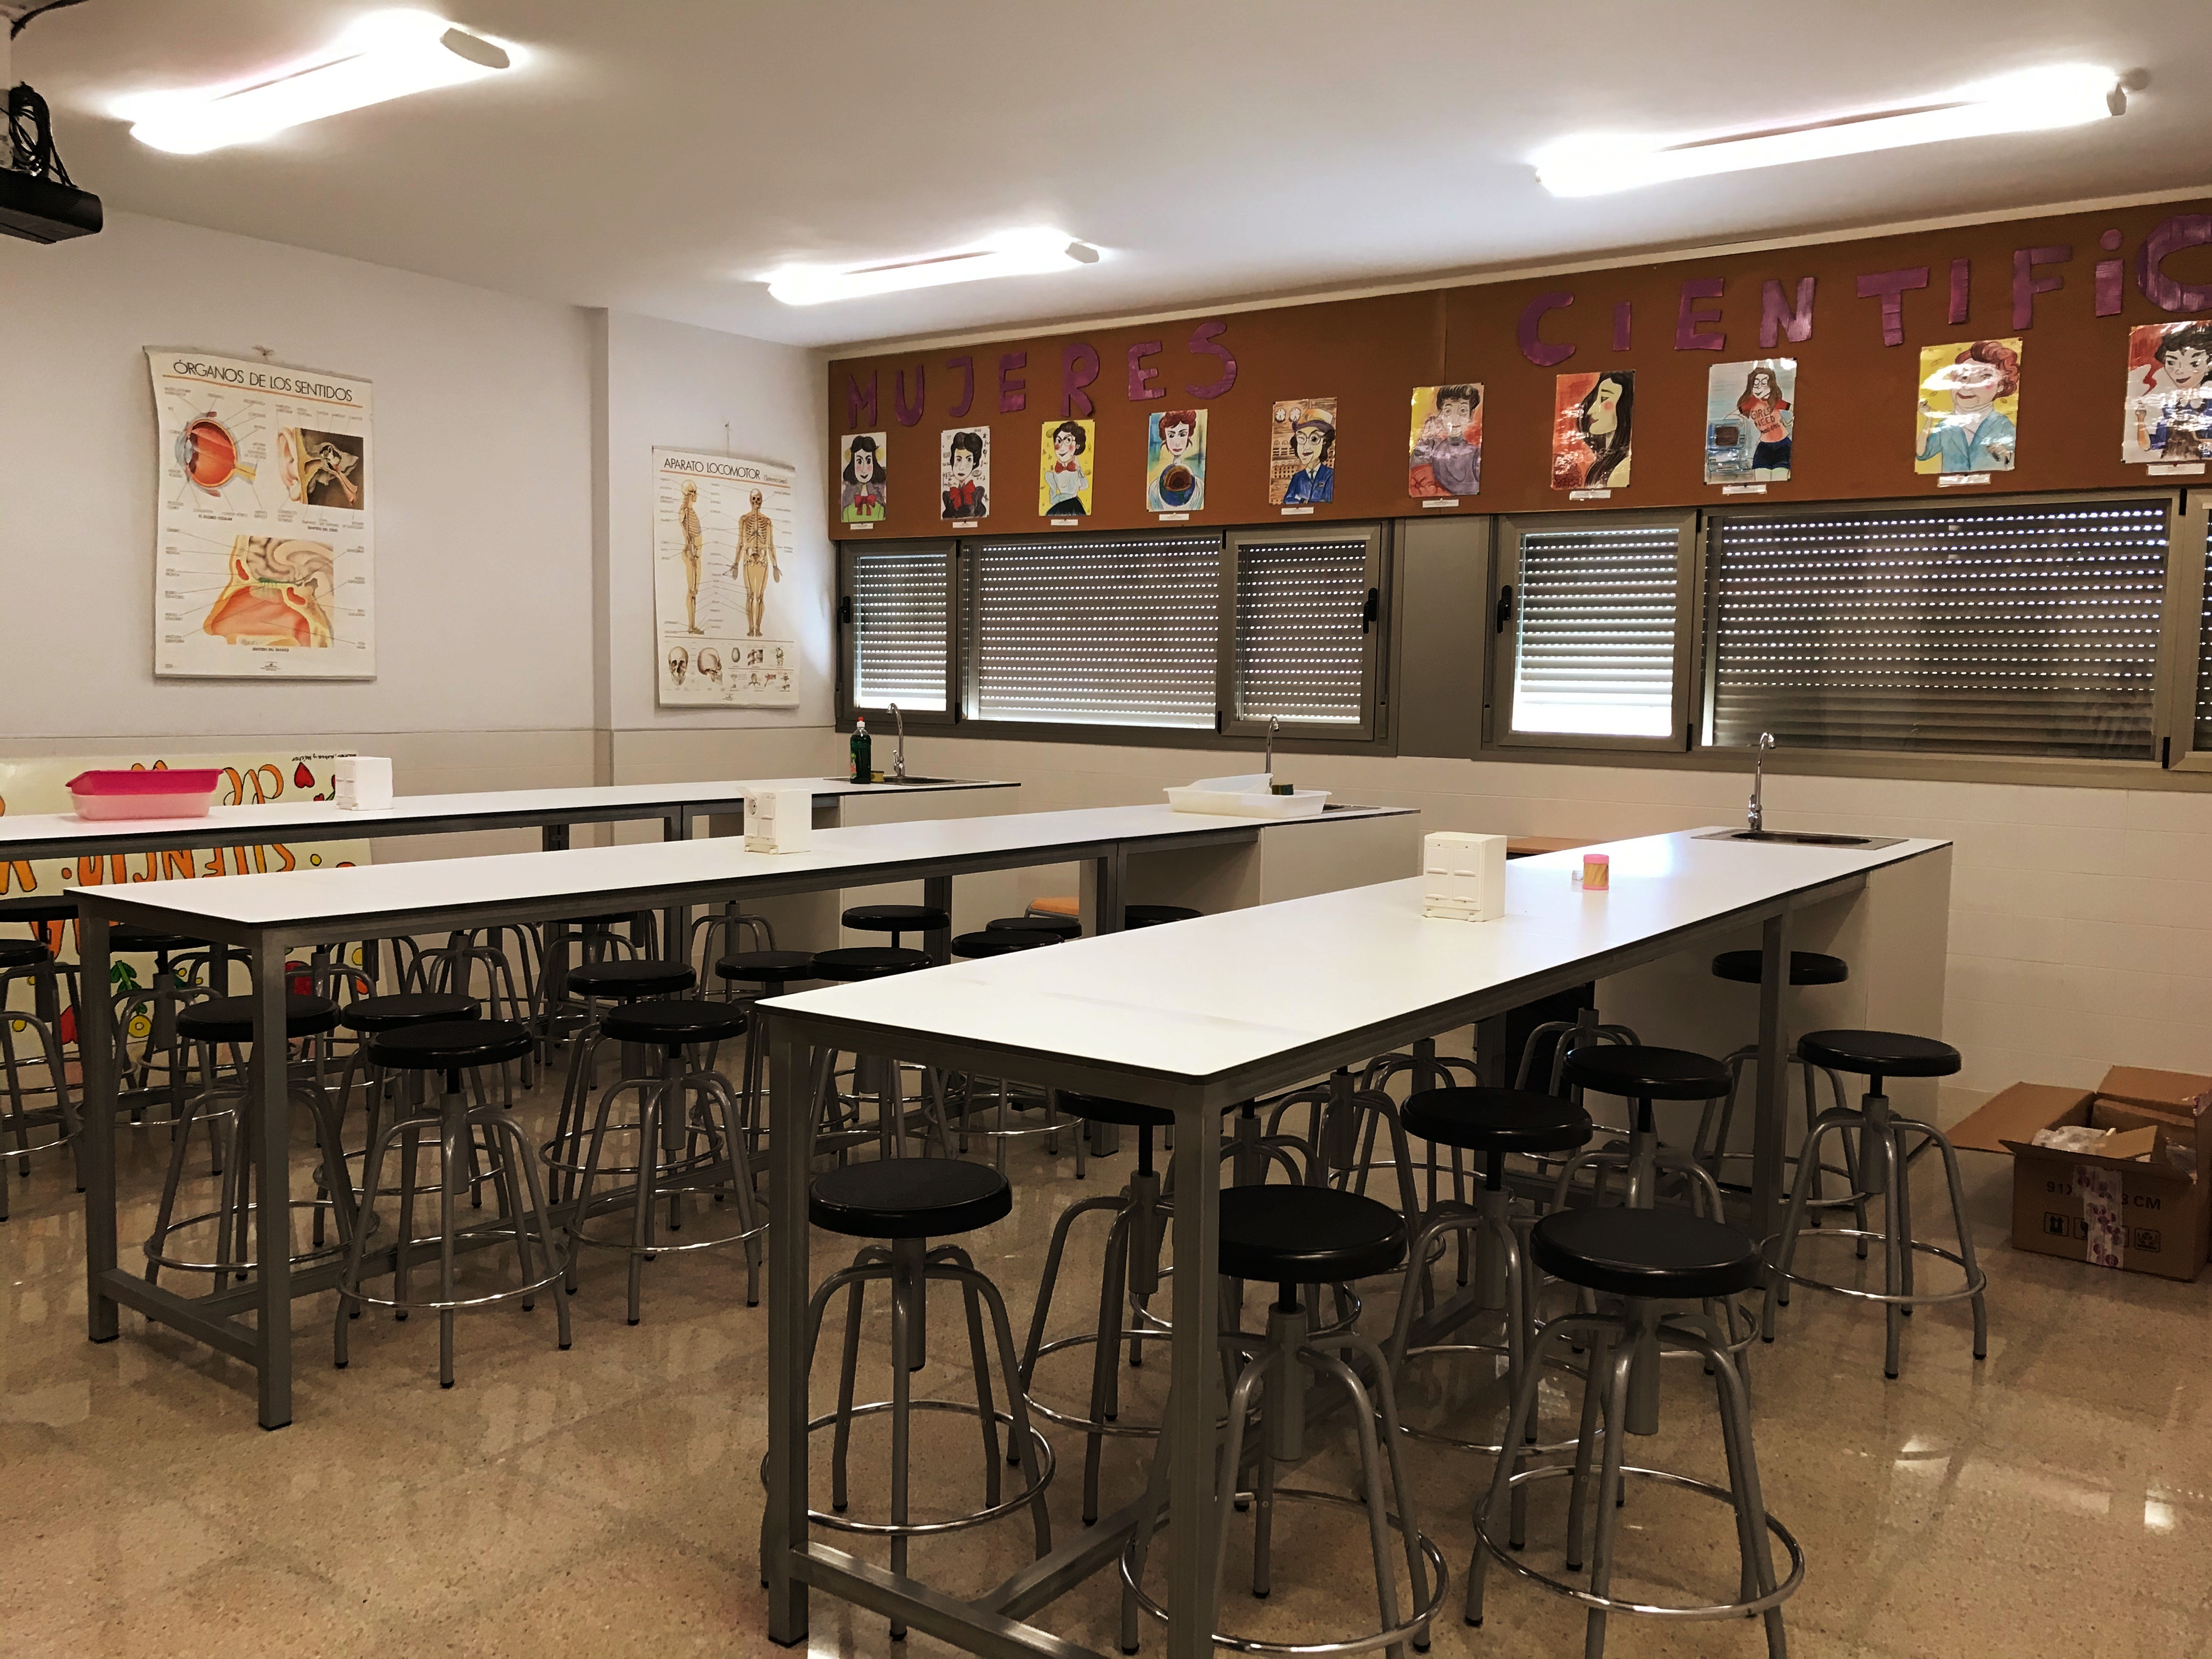 Laboratorio secundaria 2